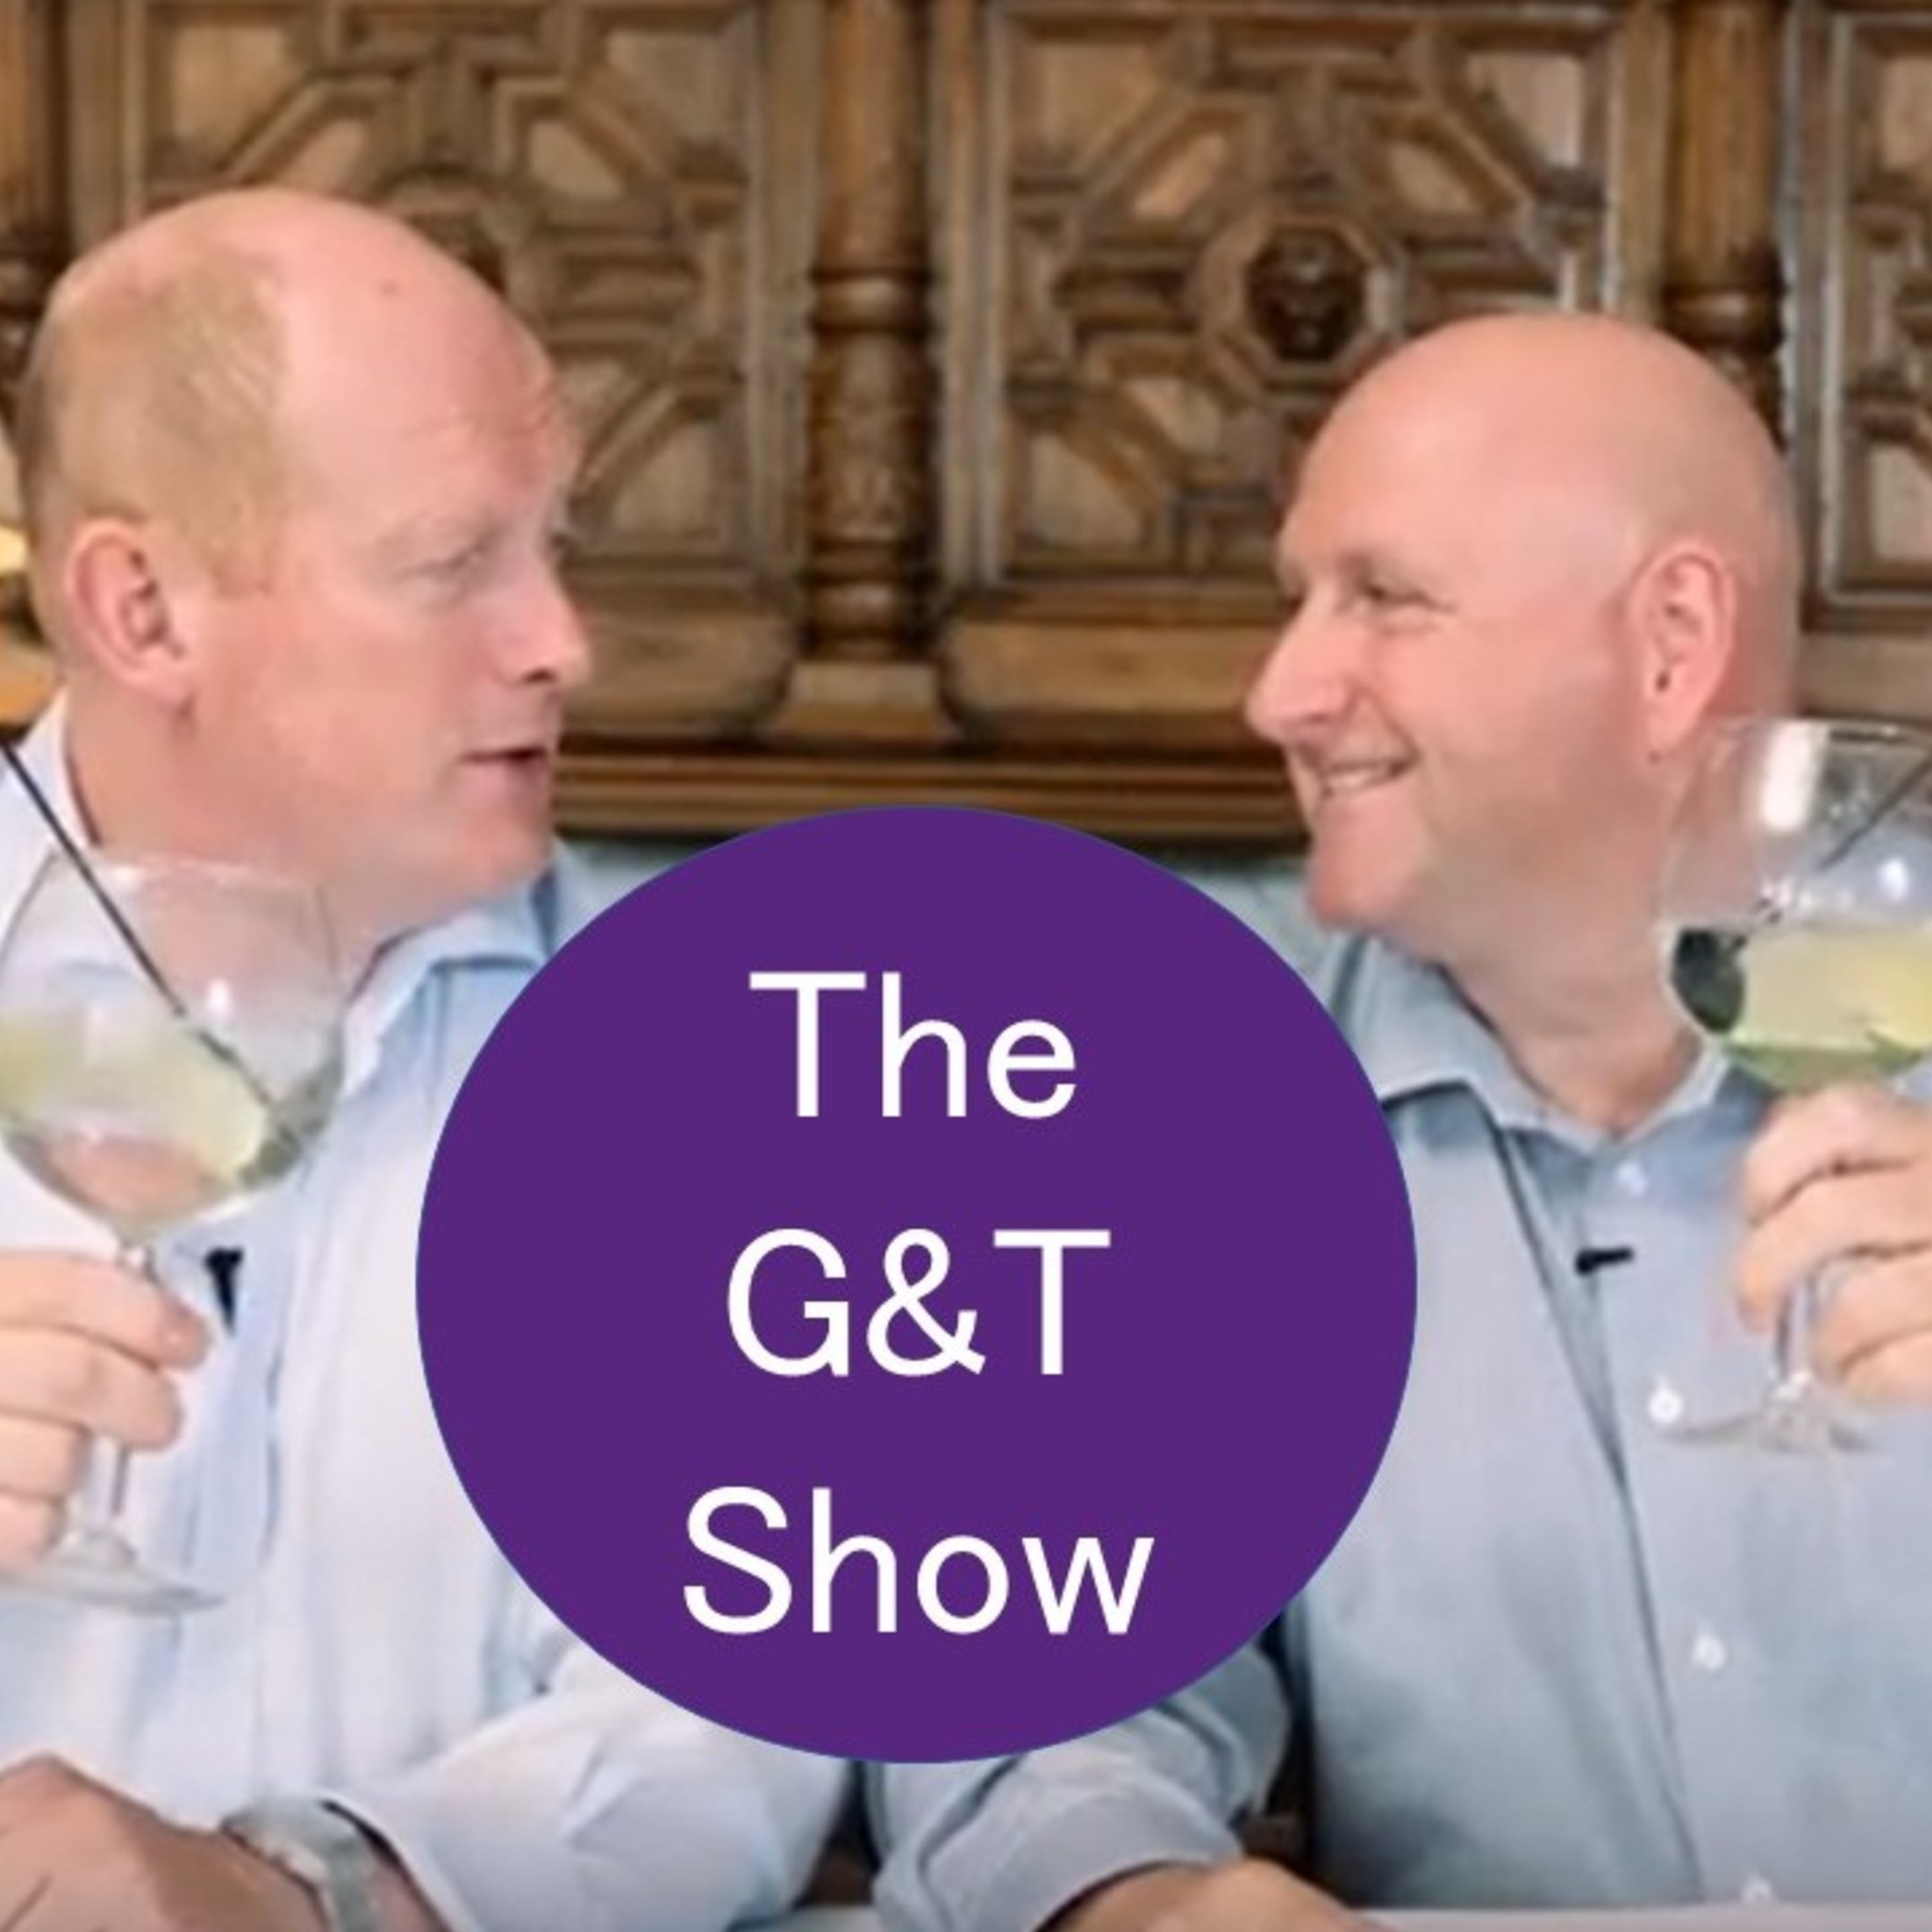 GBTV - G&T with Guy and Terry - Is buying a business right for you and can you learn how?